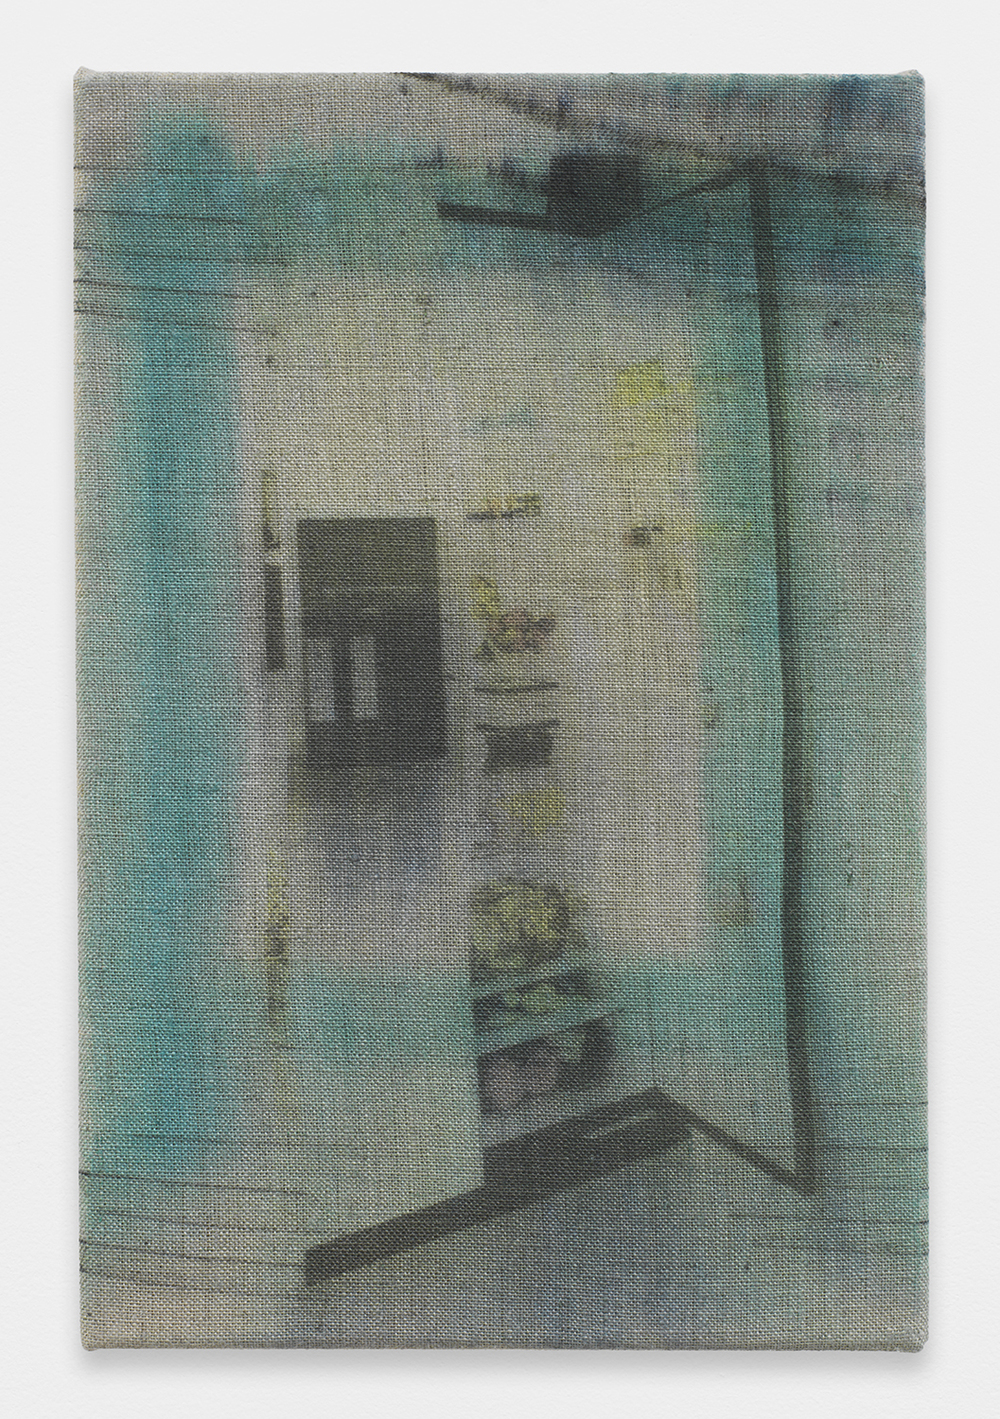 AUGUSTUS THOMPSON  IKEA090 (FridgeCrop)  , 2013   Inkjet on linen   12 x 8 inches